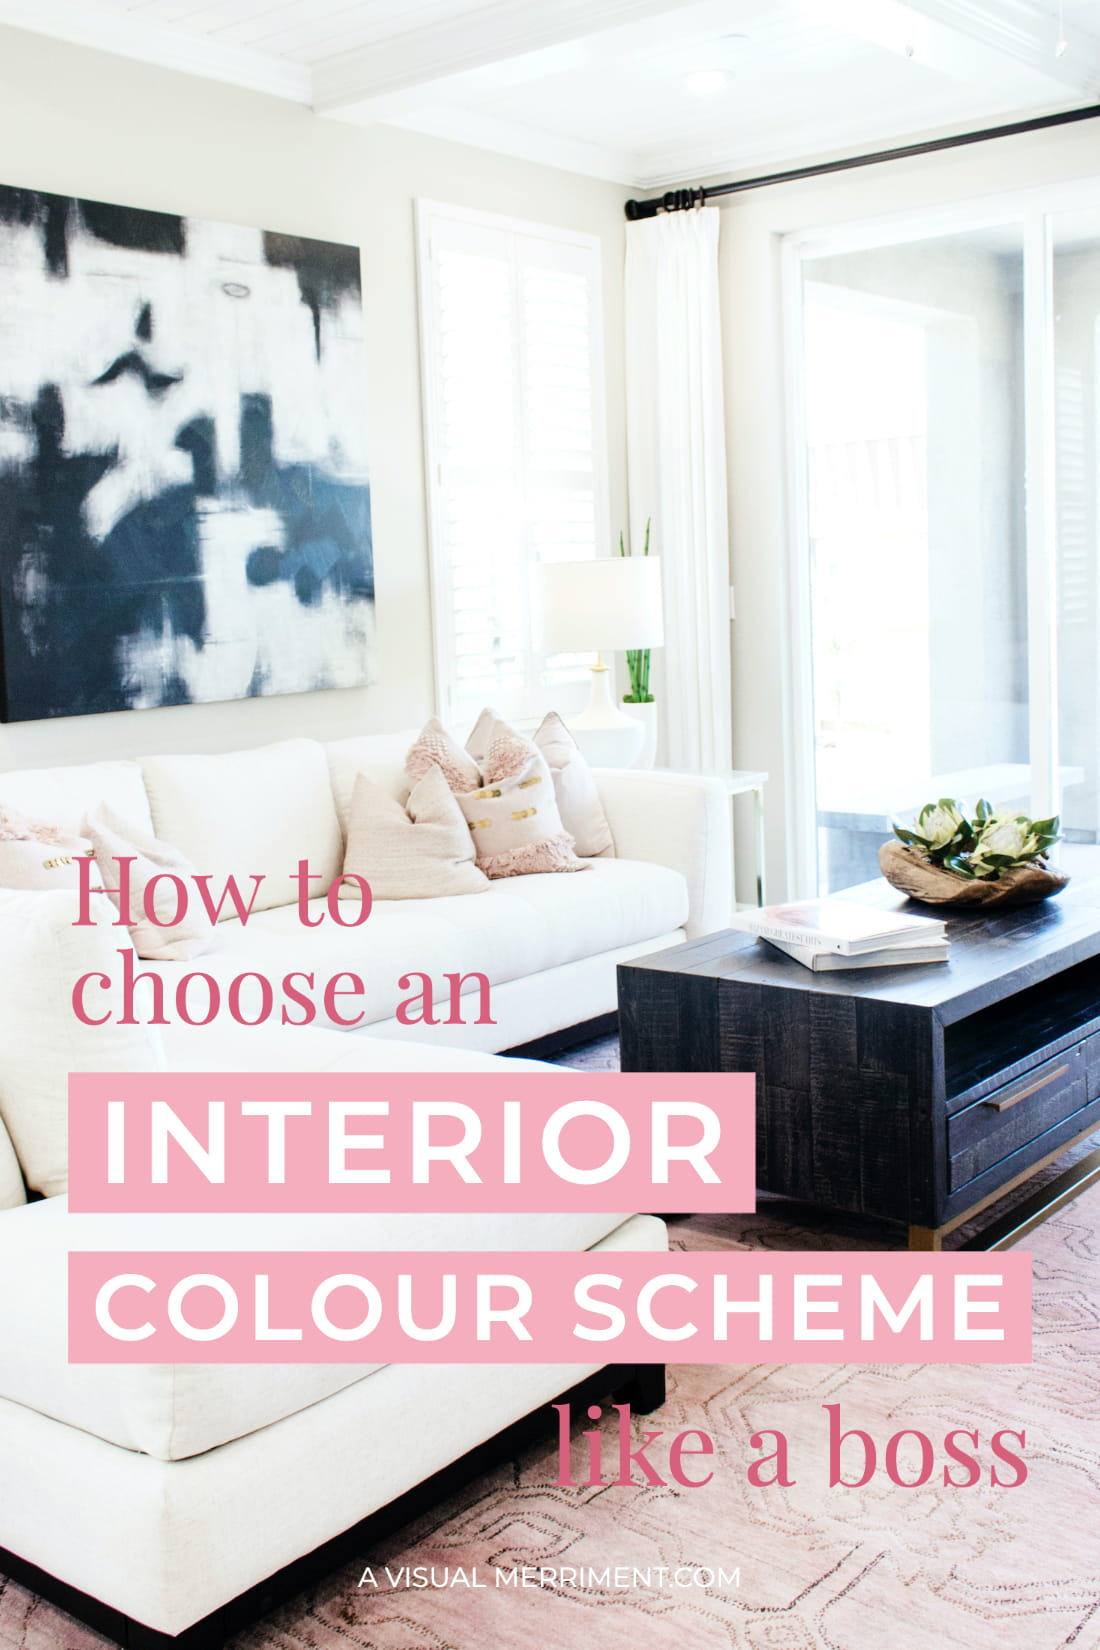 Pink interior colour scheme hero